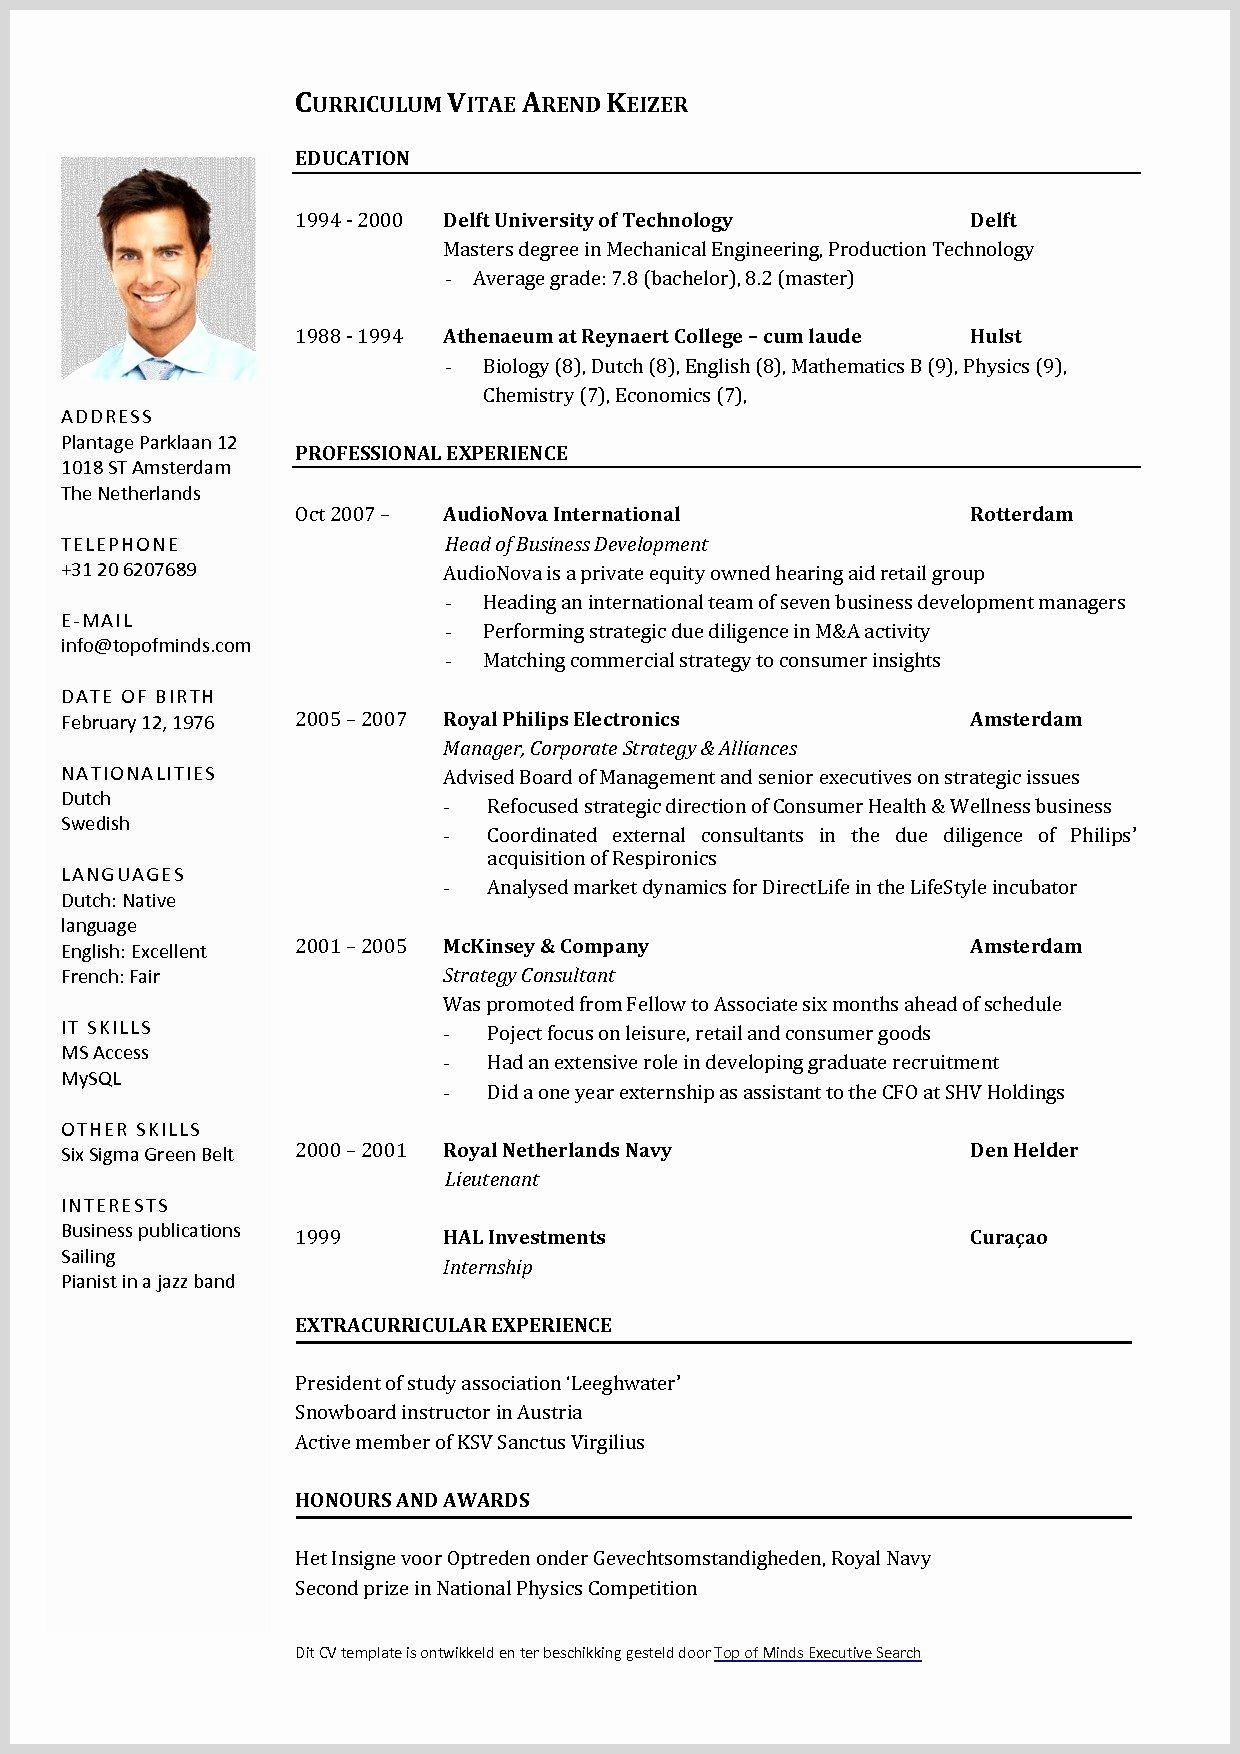 Resume Format Libreoffice Resume Format Downloadable Resume Template Resume Format Download Cv Template Download